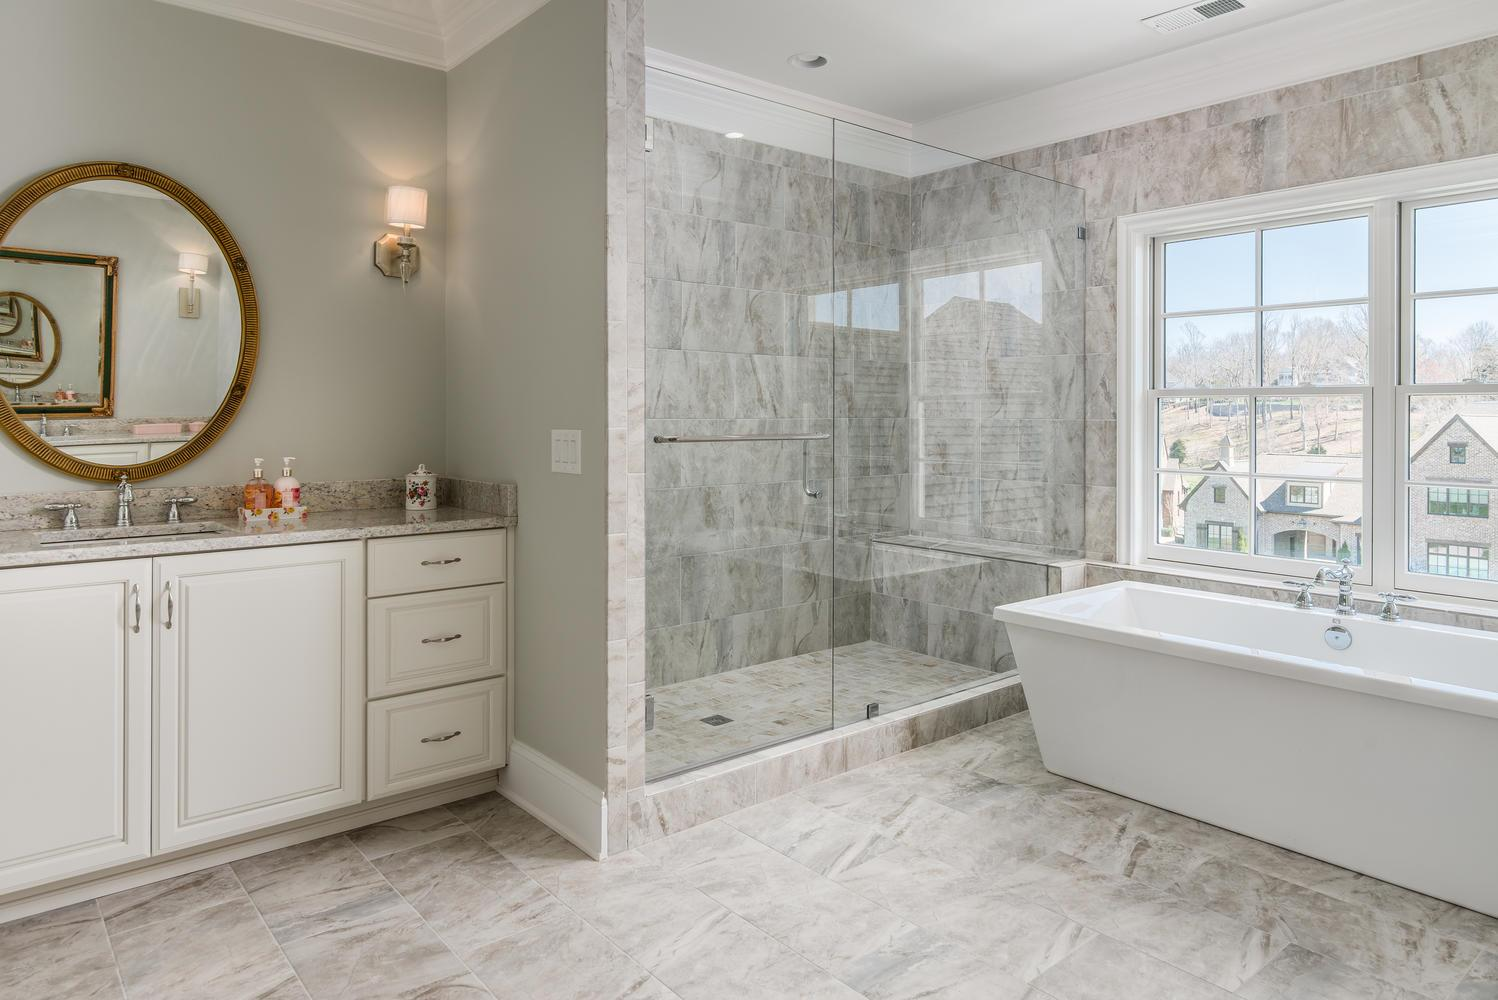 $2,485,000 - 5Br/7Ba -  for Sale in Governors Club Ph 9-b, Brentwood